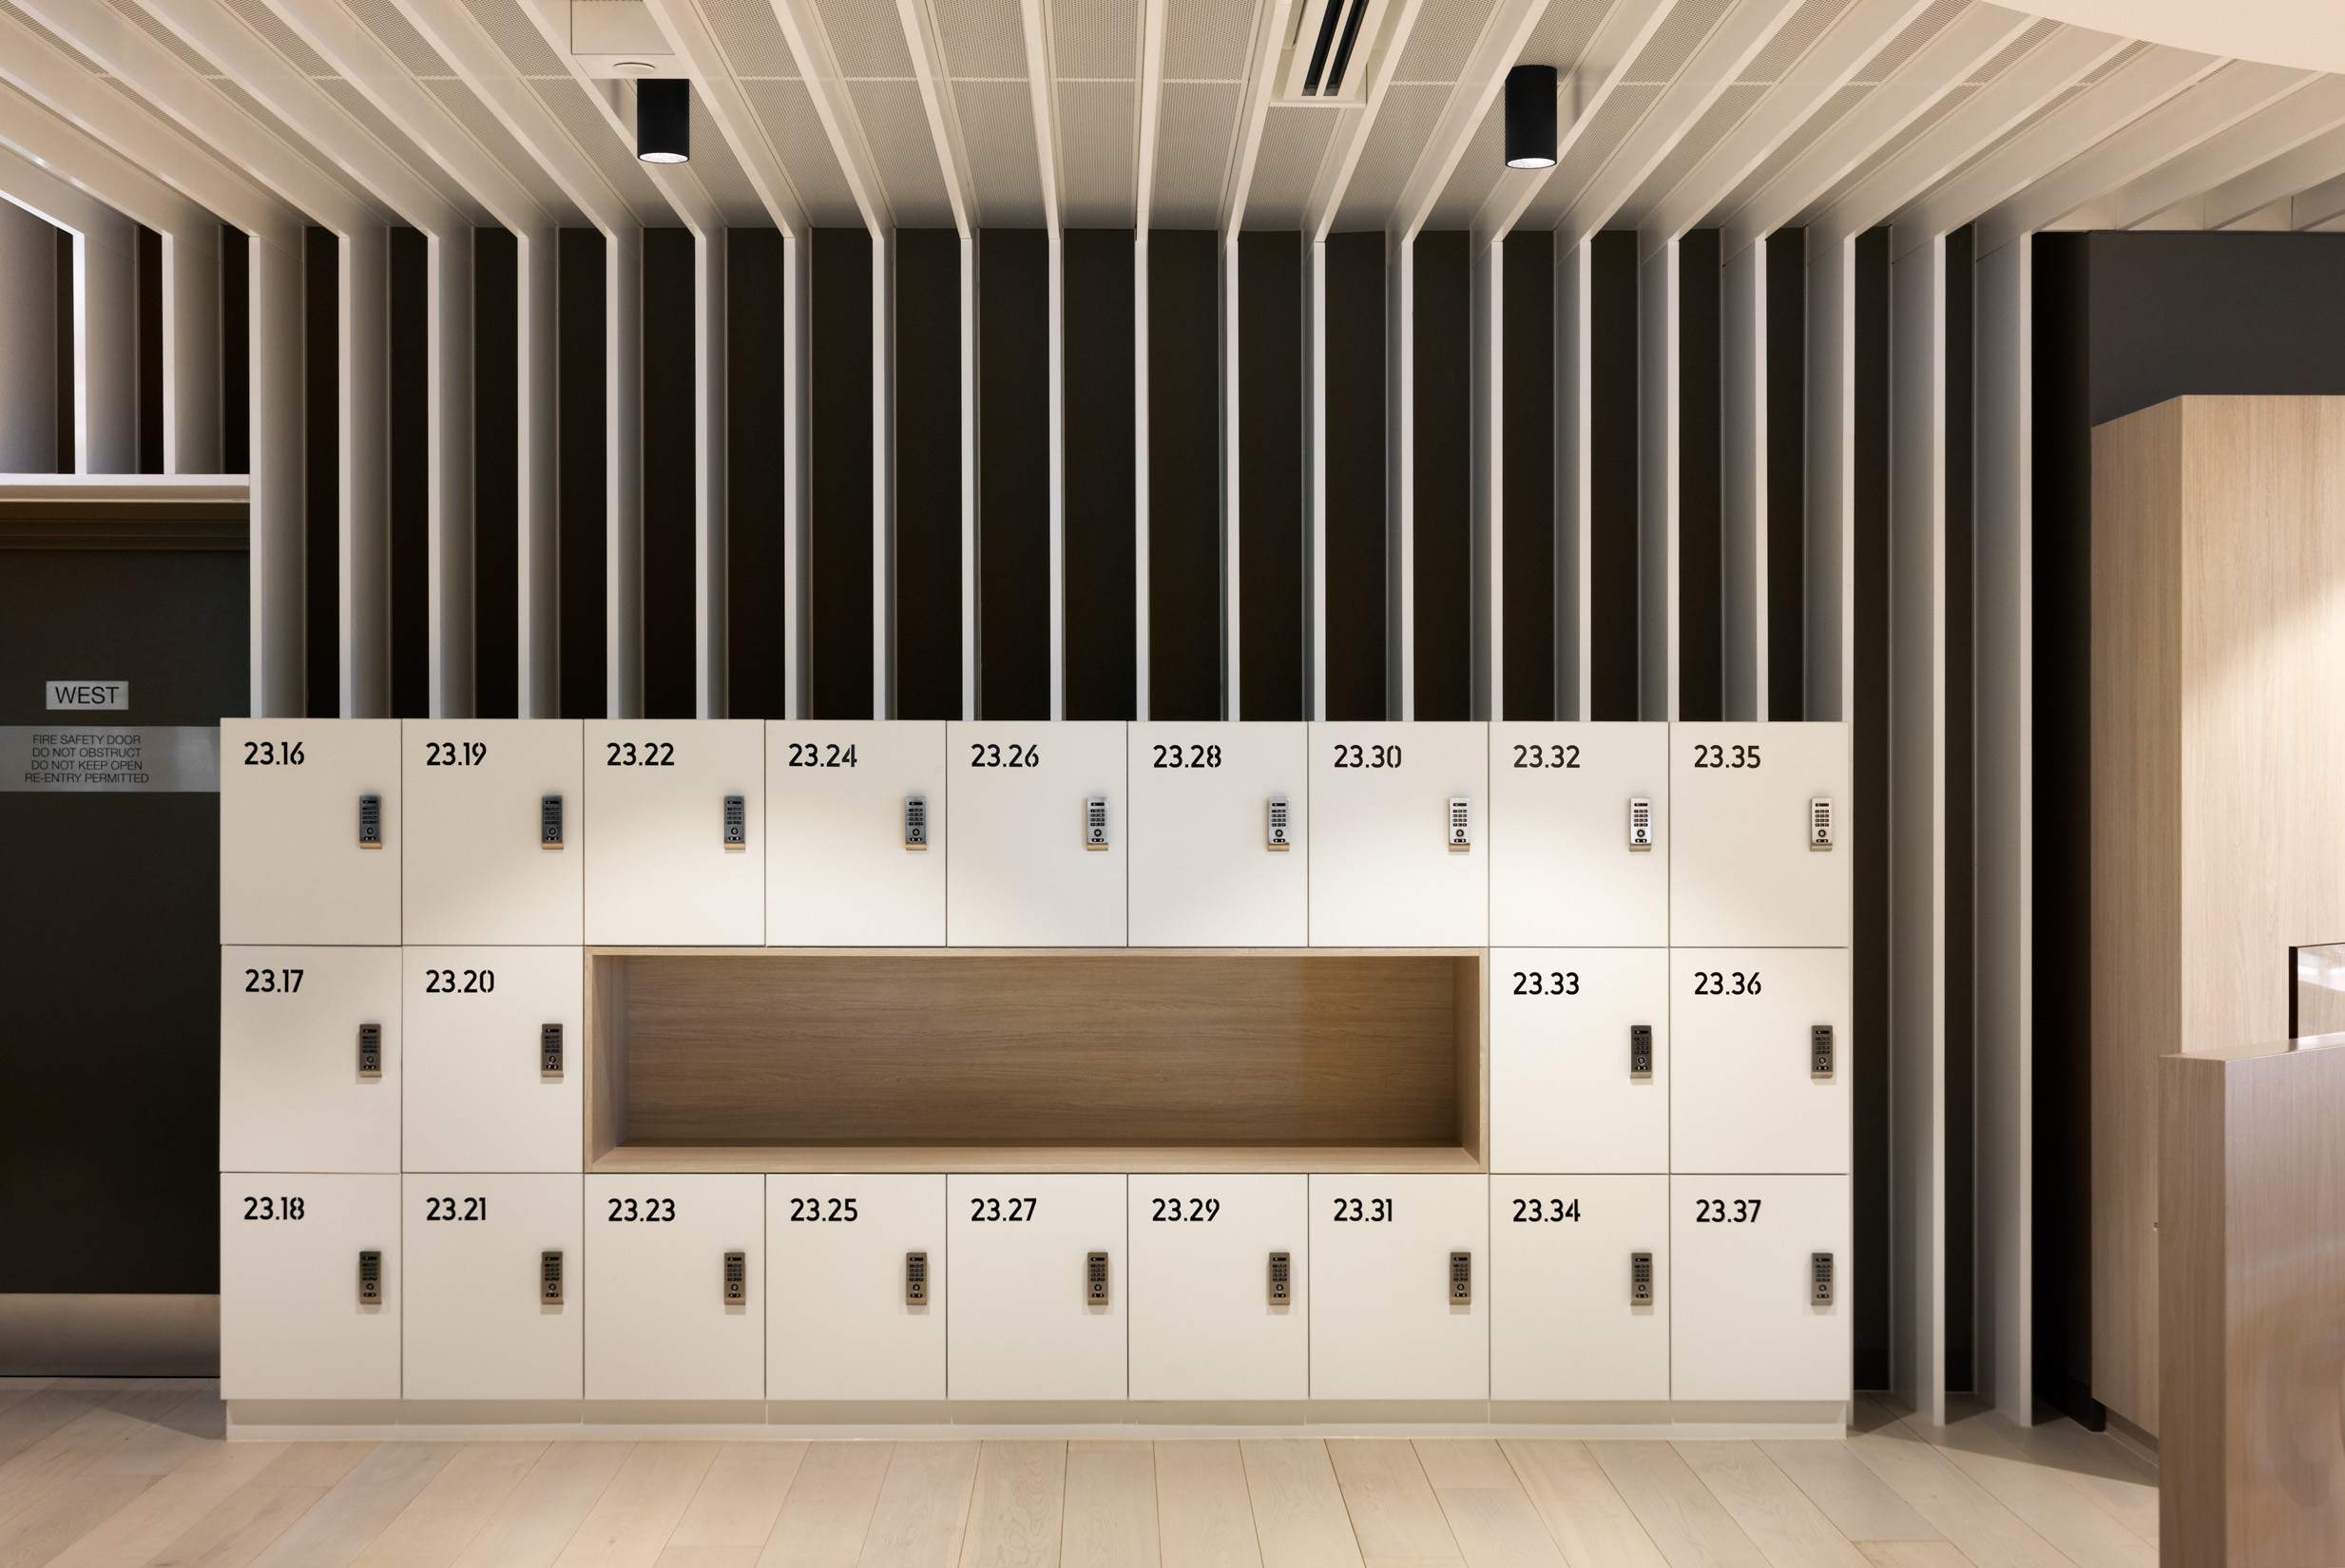 Transurban lockers and fit out by ISM Interiors in collaboration with Lockin